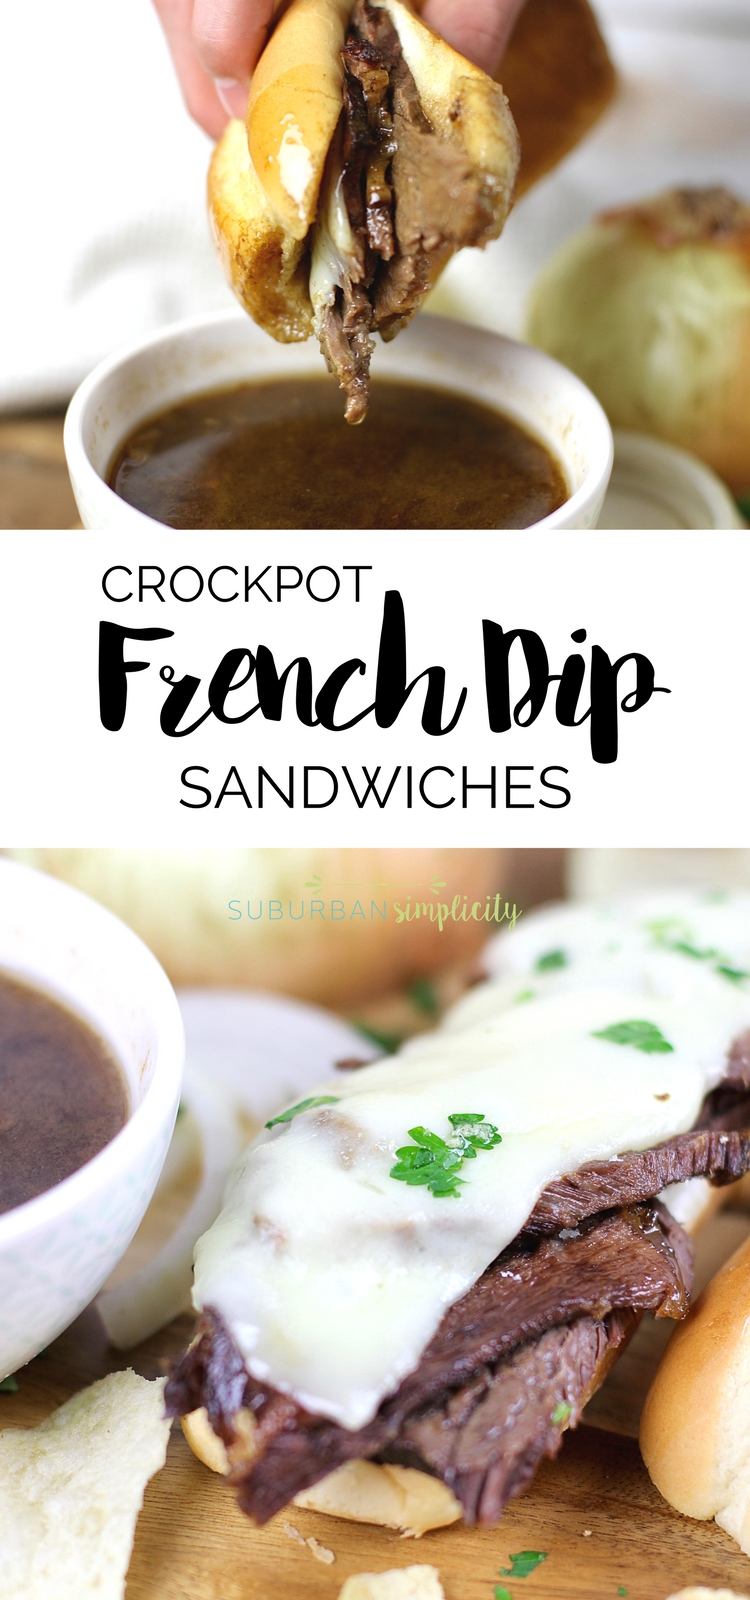 Crockpot French Dip Sandwiches are an easy dinner idea that you'll fall in love with. Tender beef atop a toasted sandwich roll with an incredibly delicious dipping sauce make this slow cooker recipe a winner!